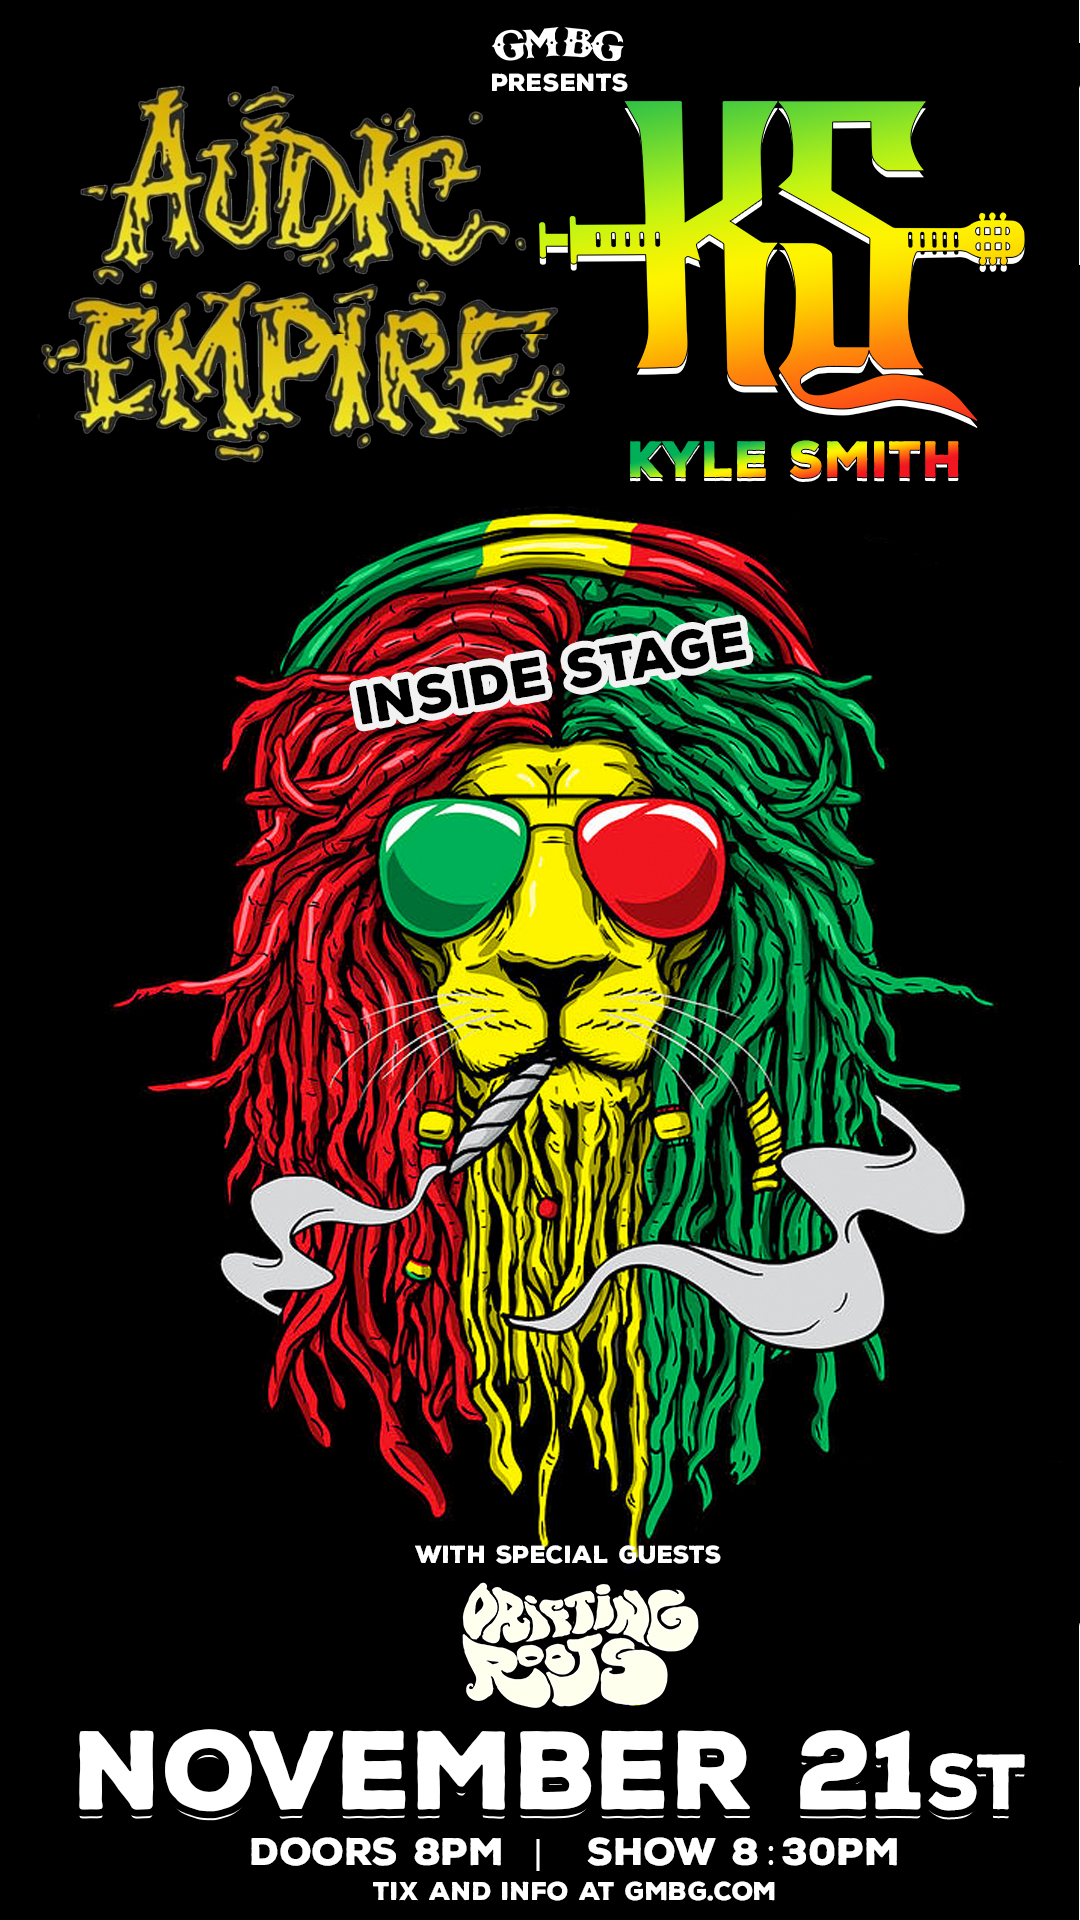 Audic Empire/Kyle Smith – INSIDE STAGE